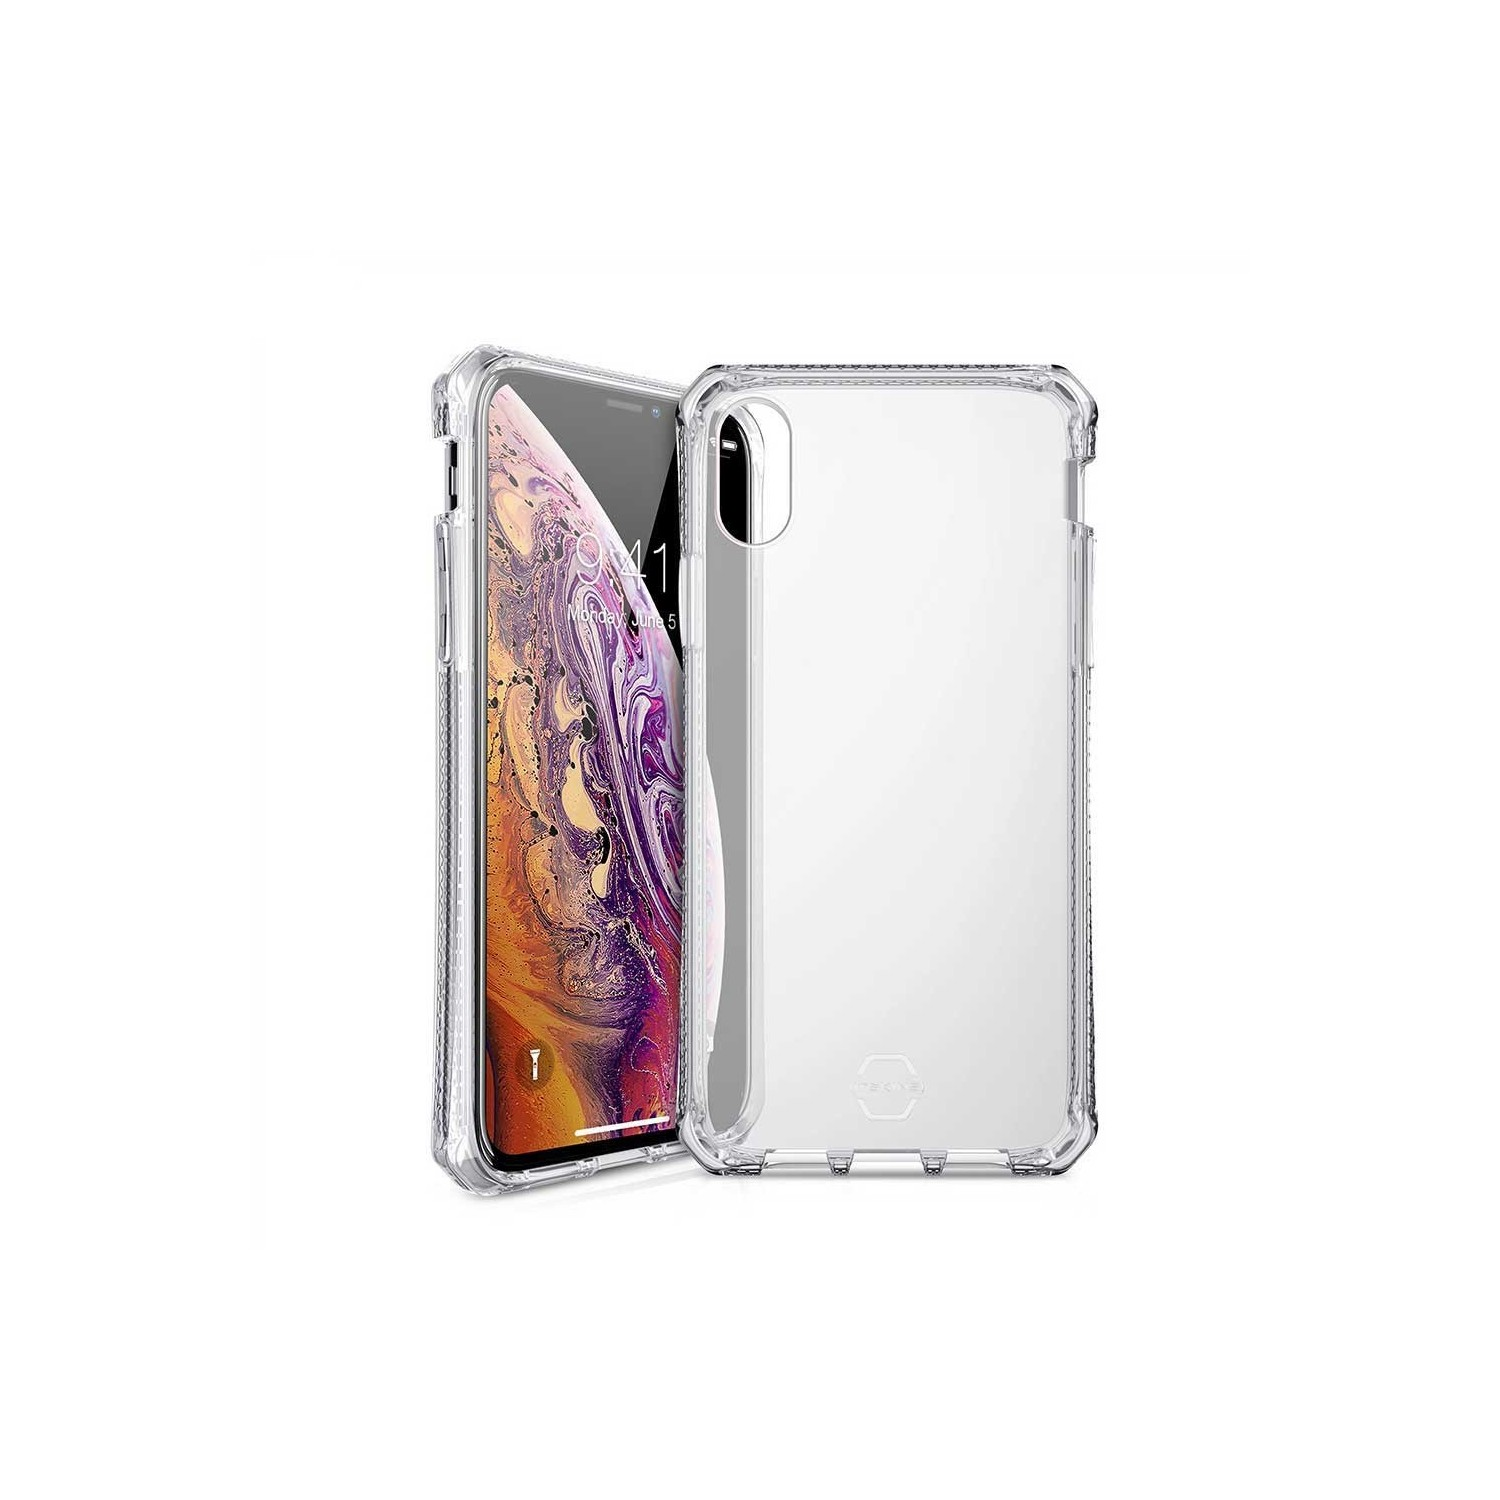 Case - ITSKINS Spectrum case for iPhone Xs / X - Clear